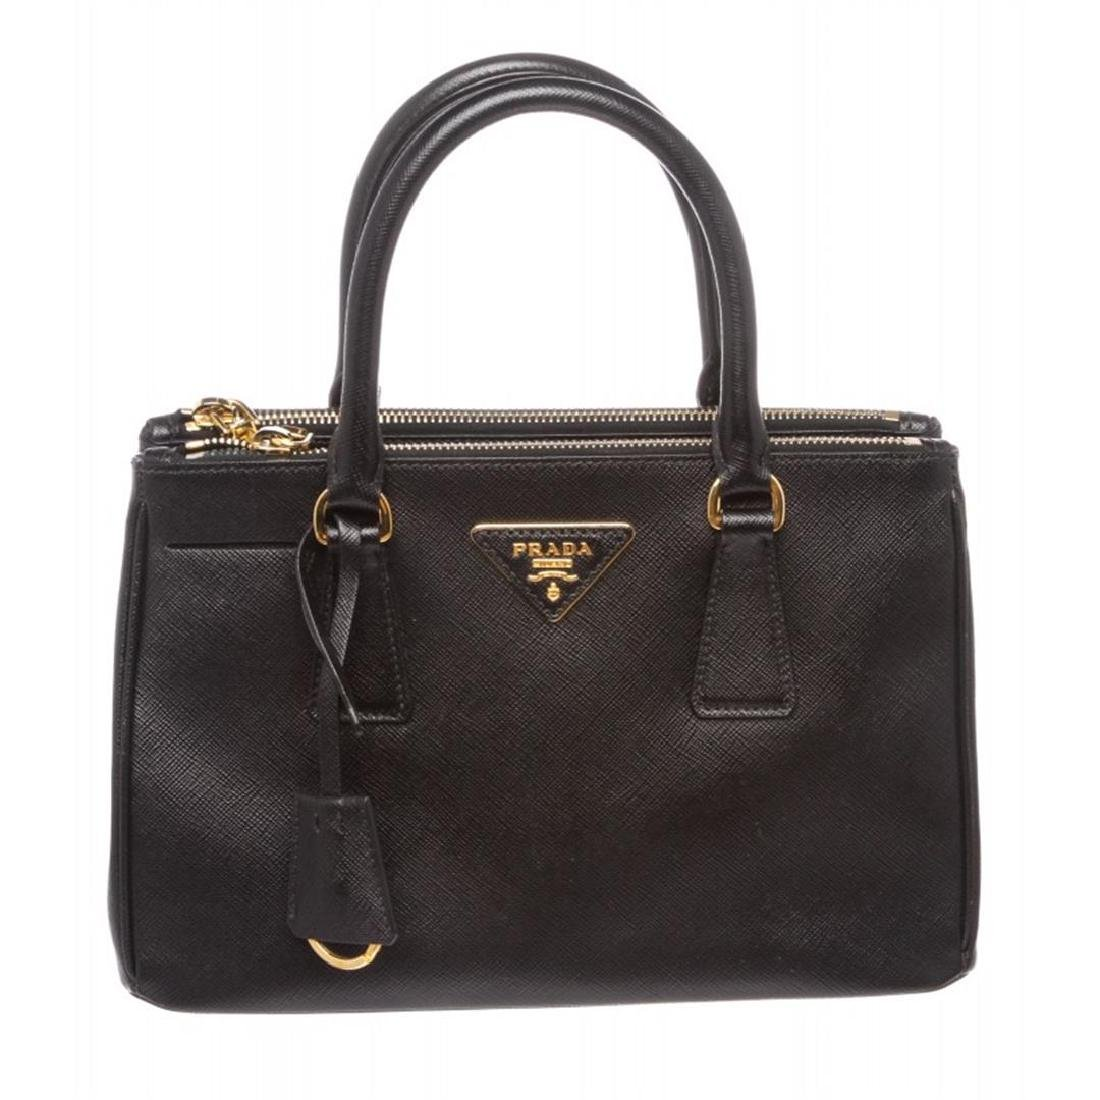 Prada Black Mini Saffiano Lux Galleria Double Zip Tote